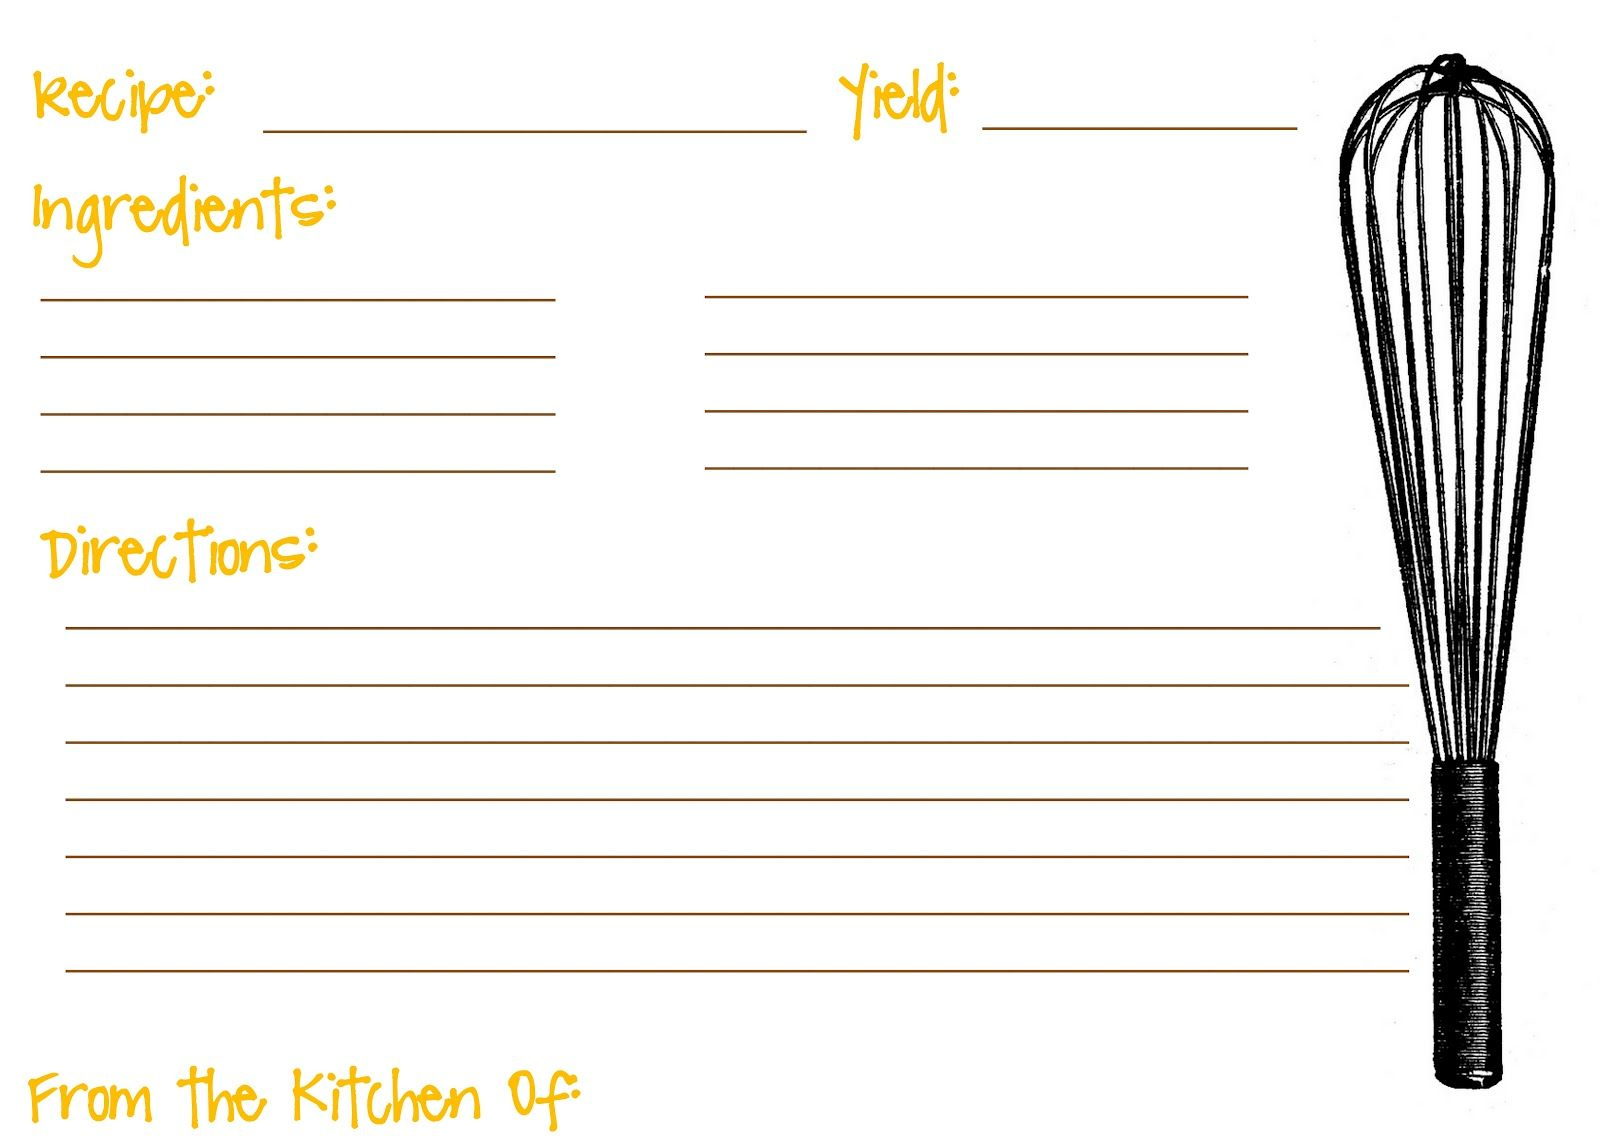 Scooter cakes free printable recipe cards recipe cards for Free printable full page recipe templates